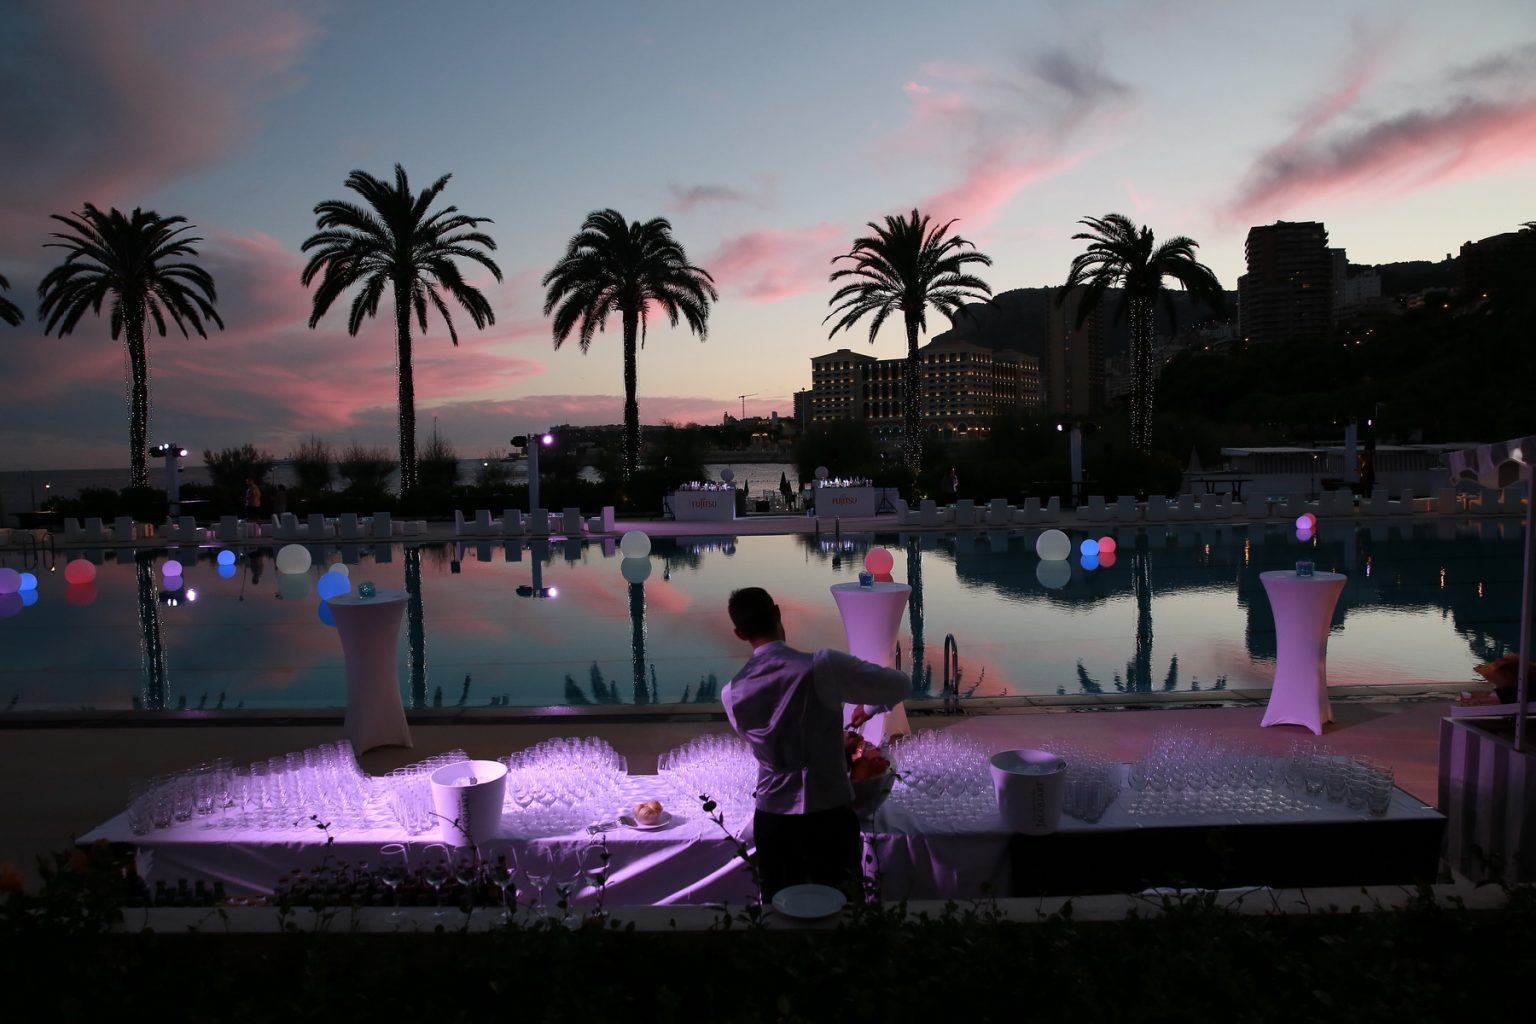 Le Deck Monte Carlo Pool Evening 9 - Le Deck Monte Carlo Pool Evening